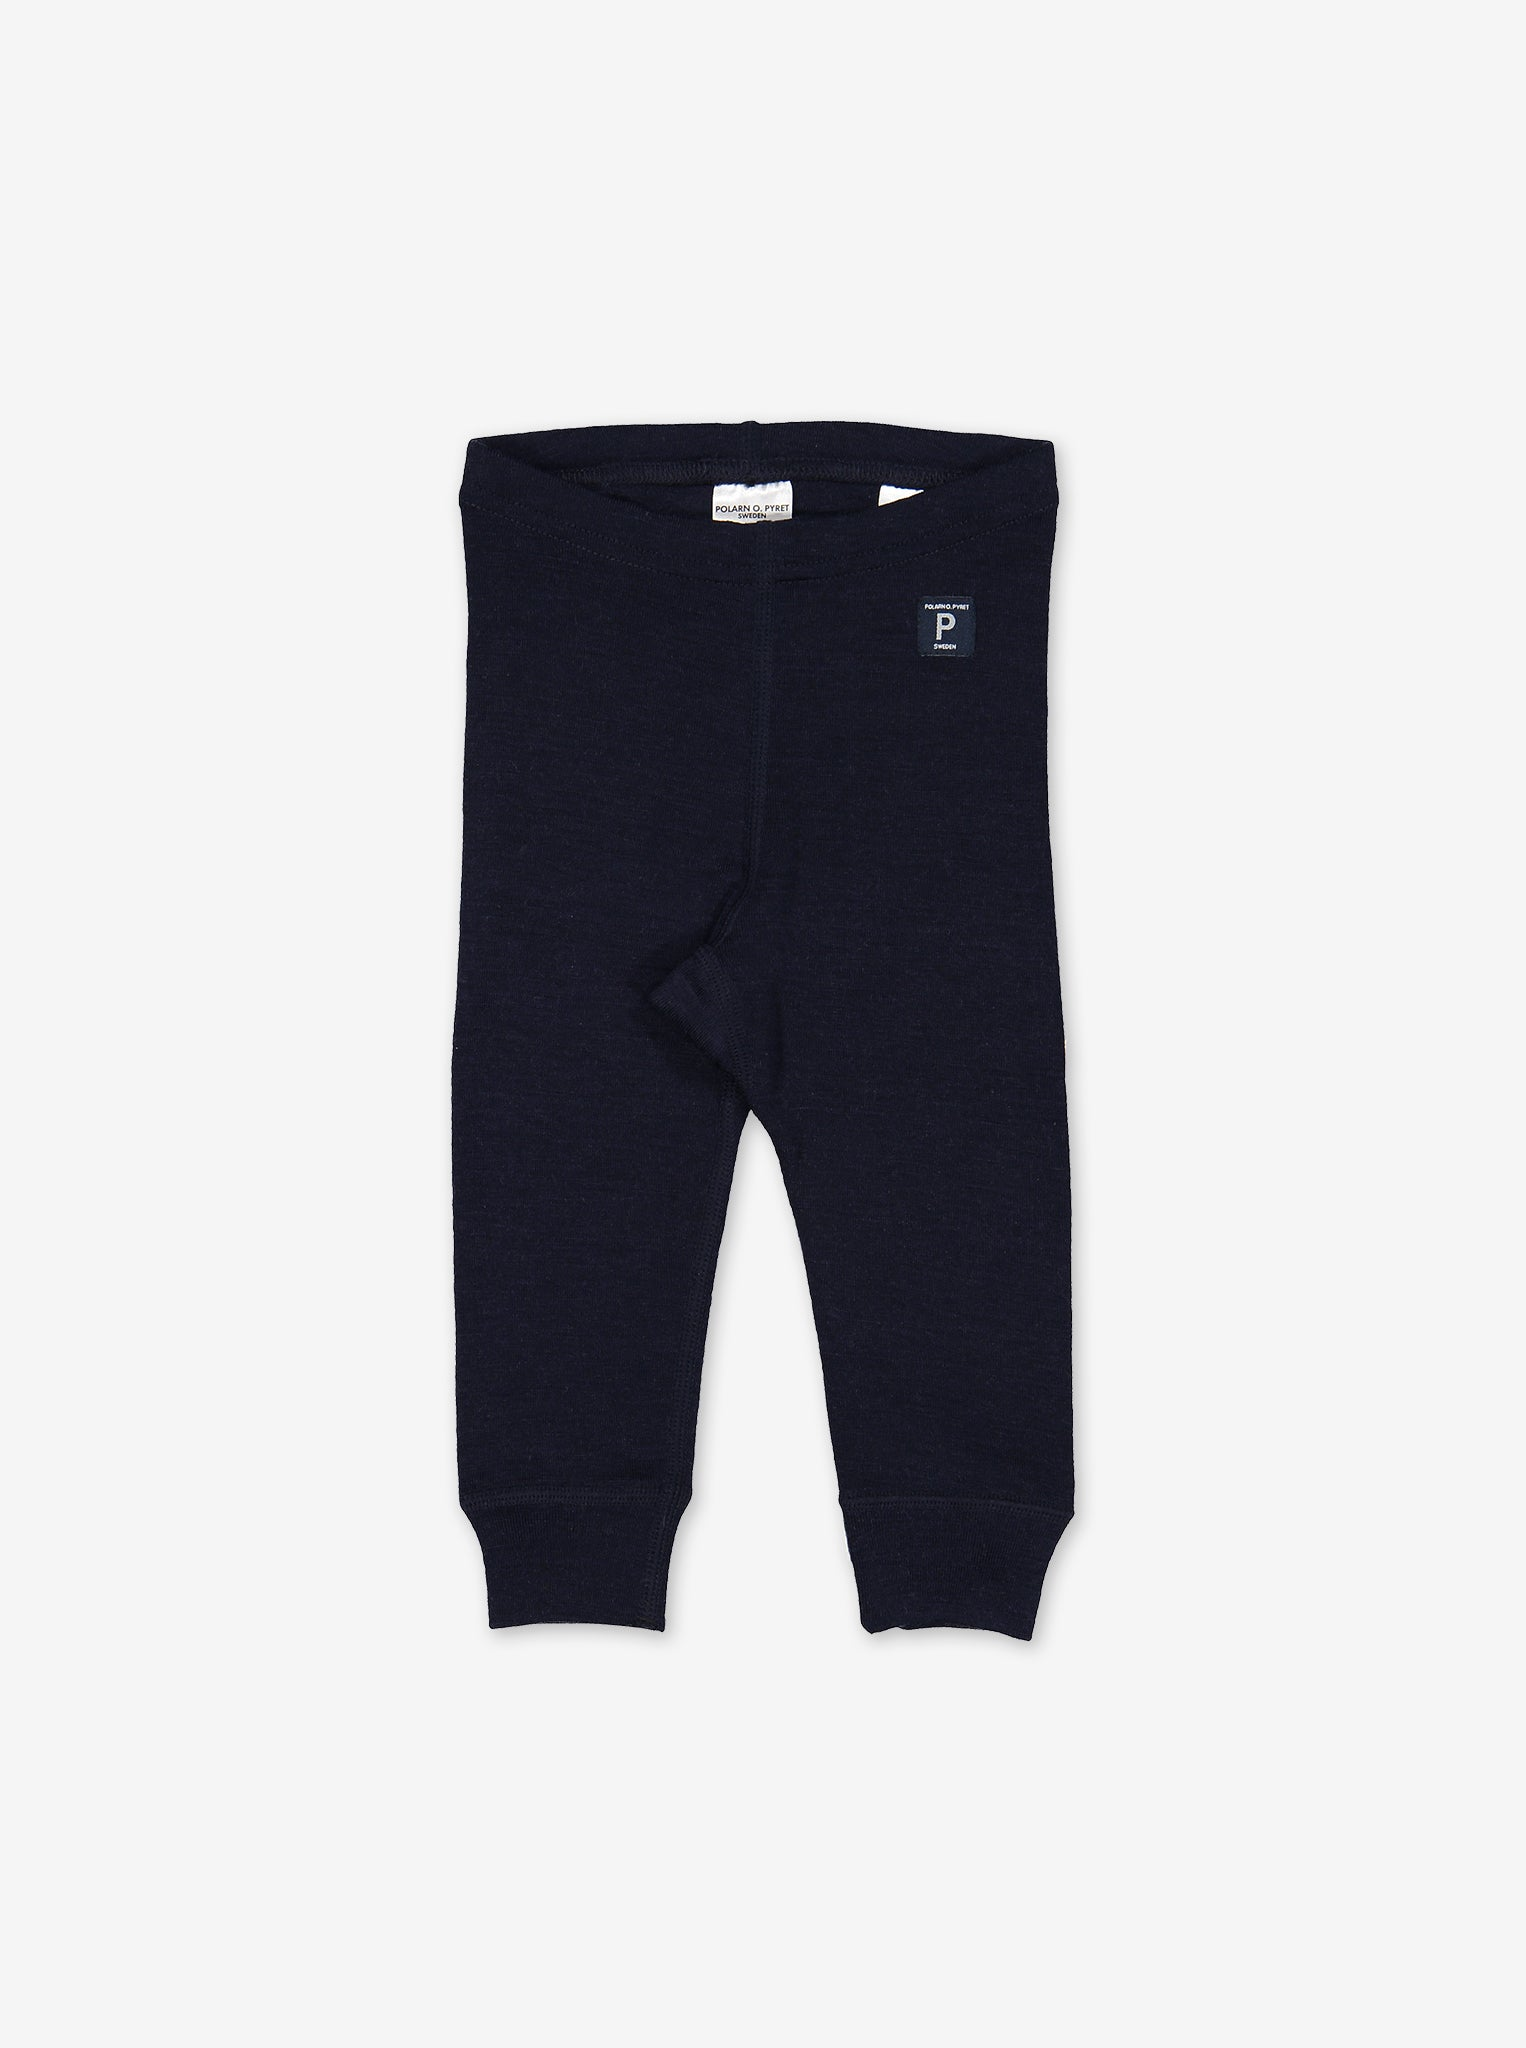 Thermal Merino Baby Long Johns